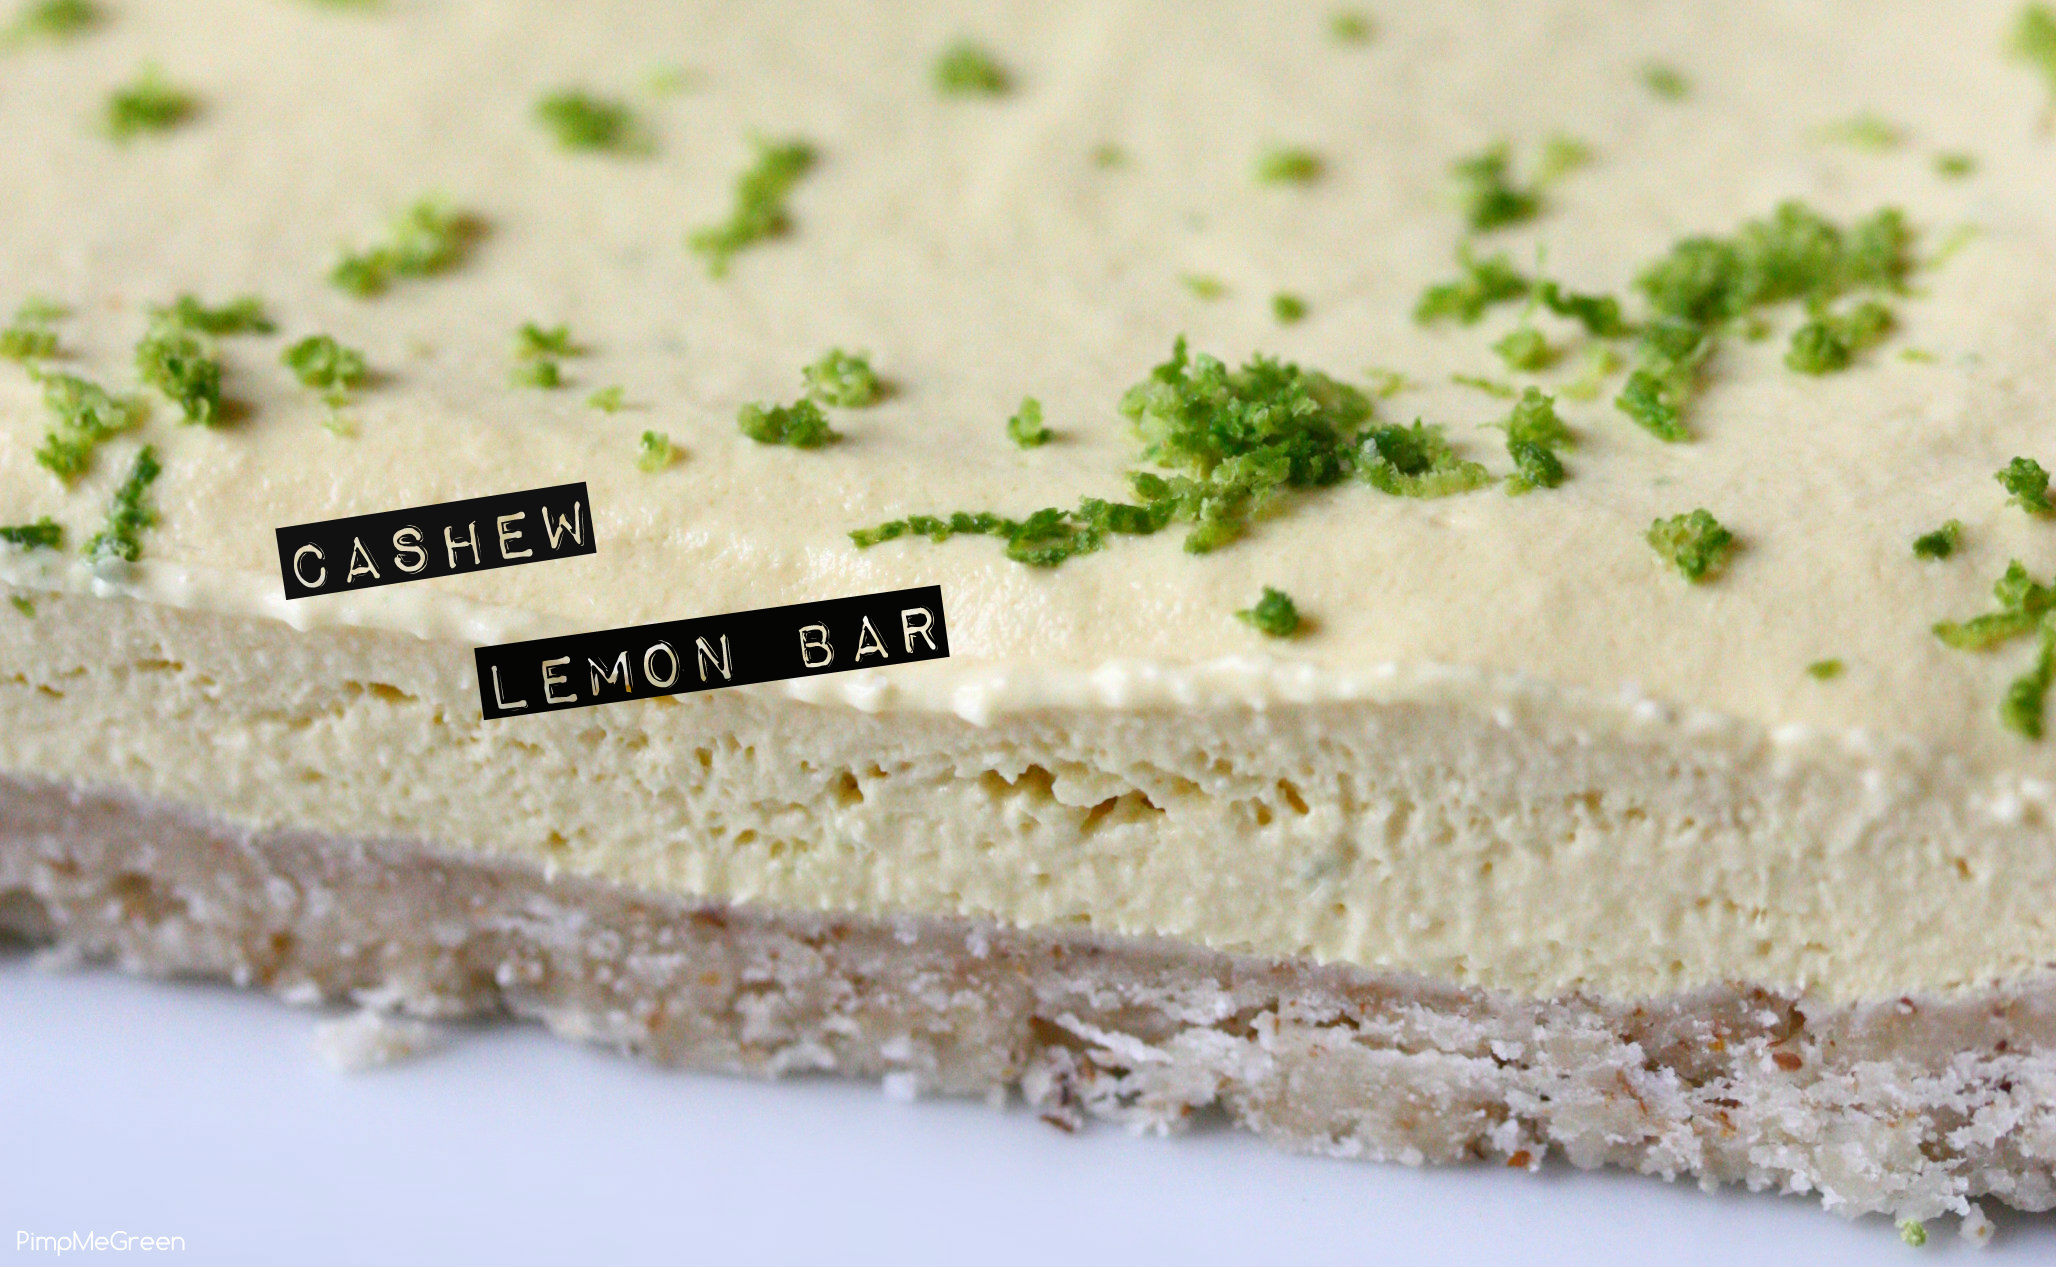 Cashew lemon bar titled pmg